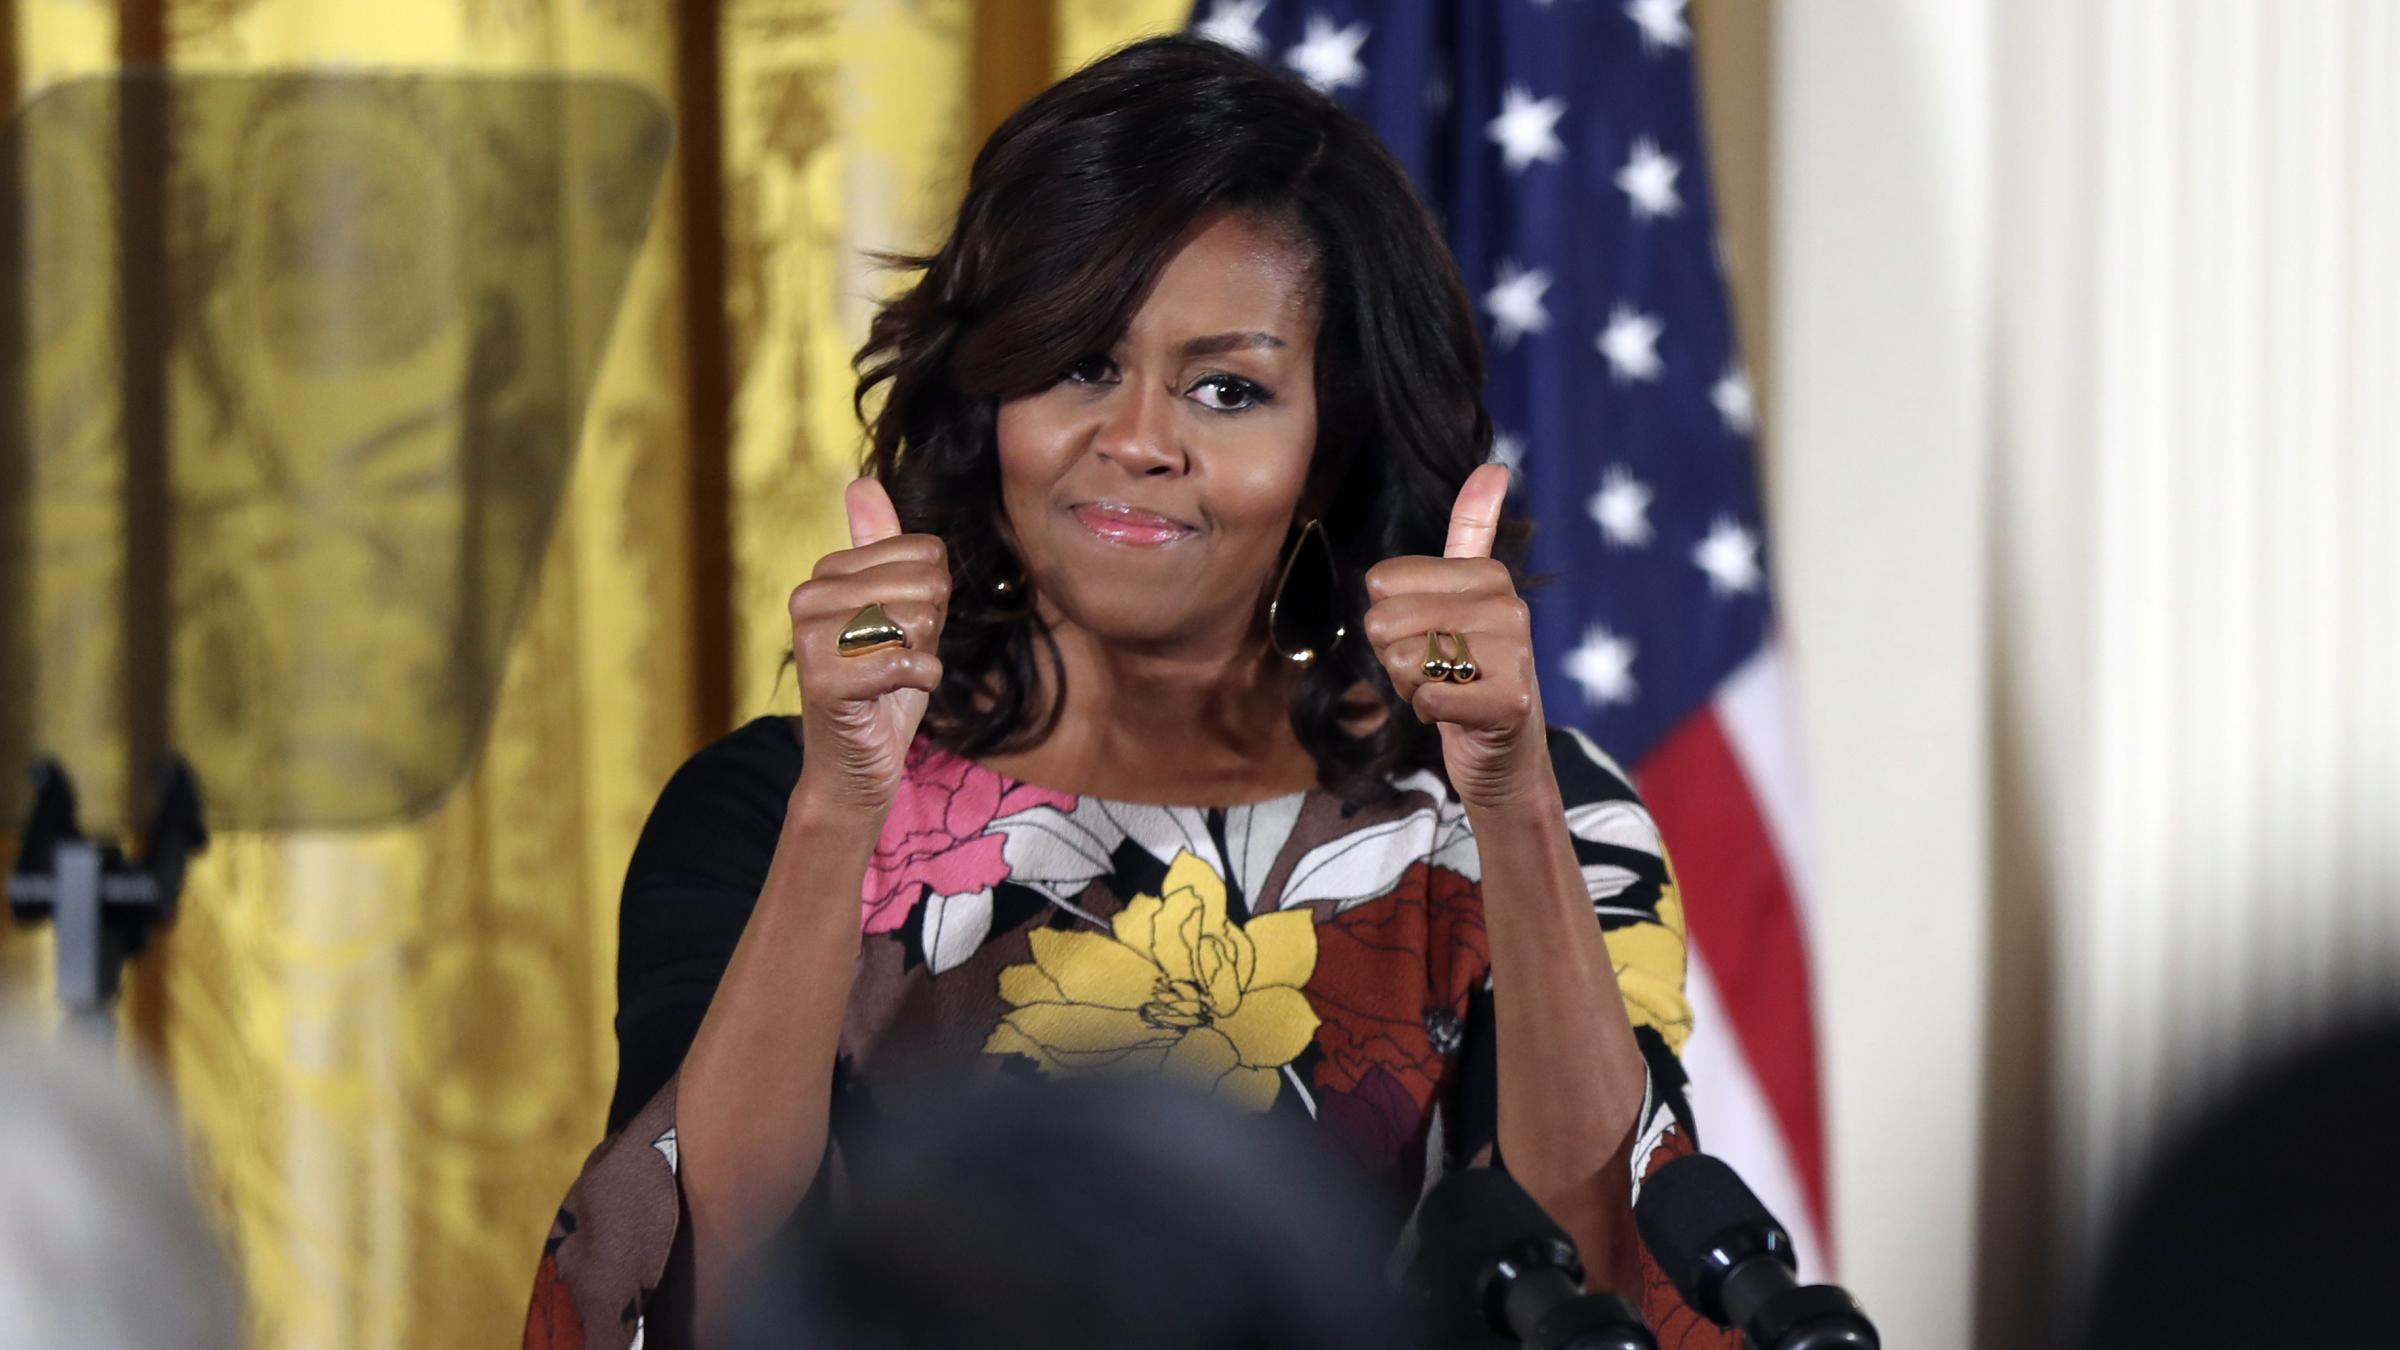 meaning of michelle essays celebrate first lady s realness wlrn first lady michelle obama welcomes community leaders from across the country to celebrate the successes and